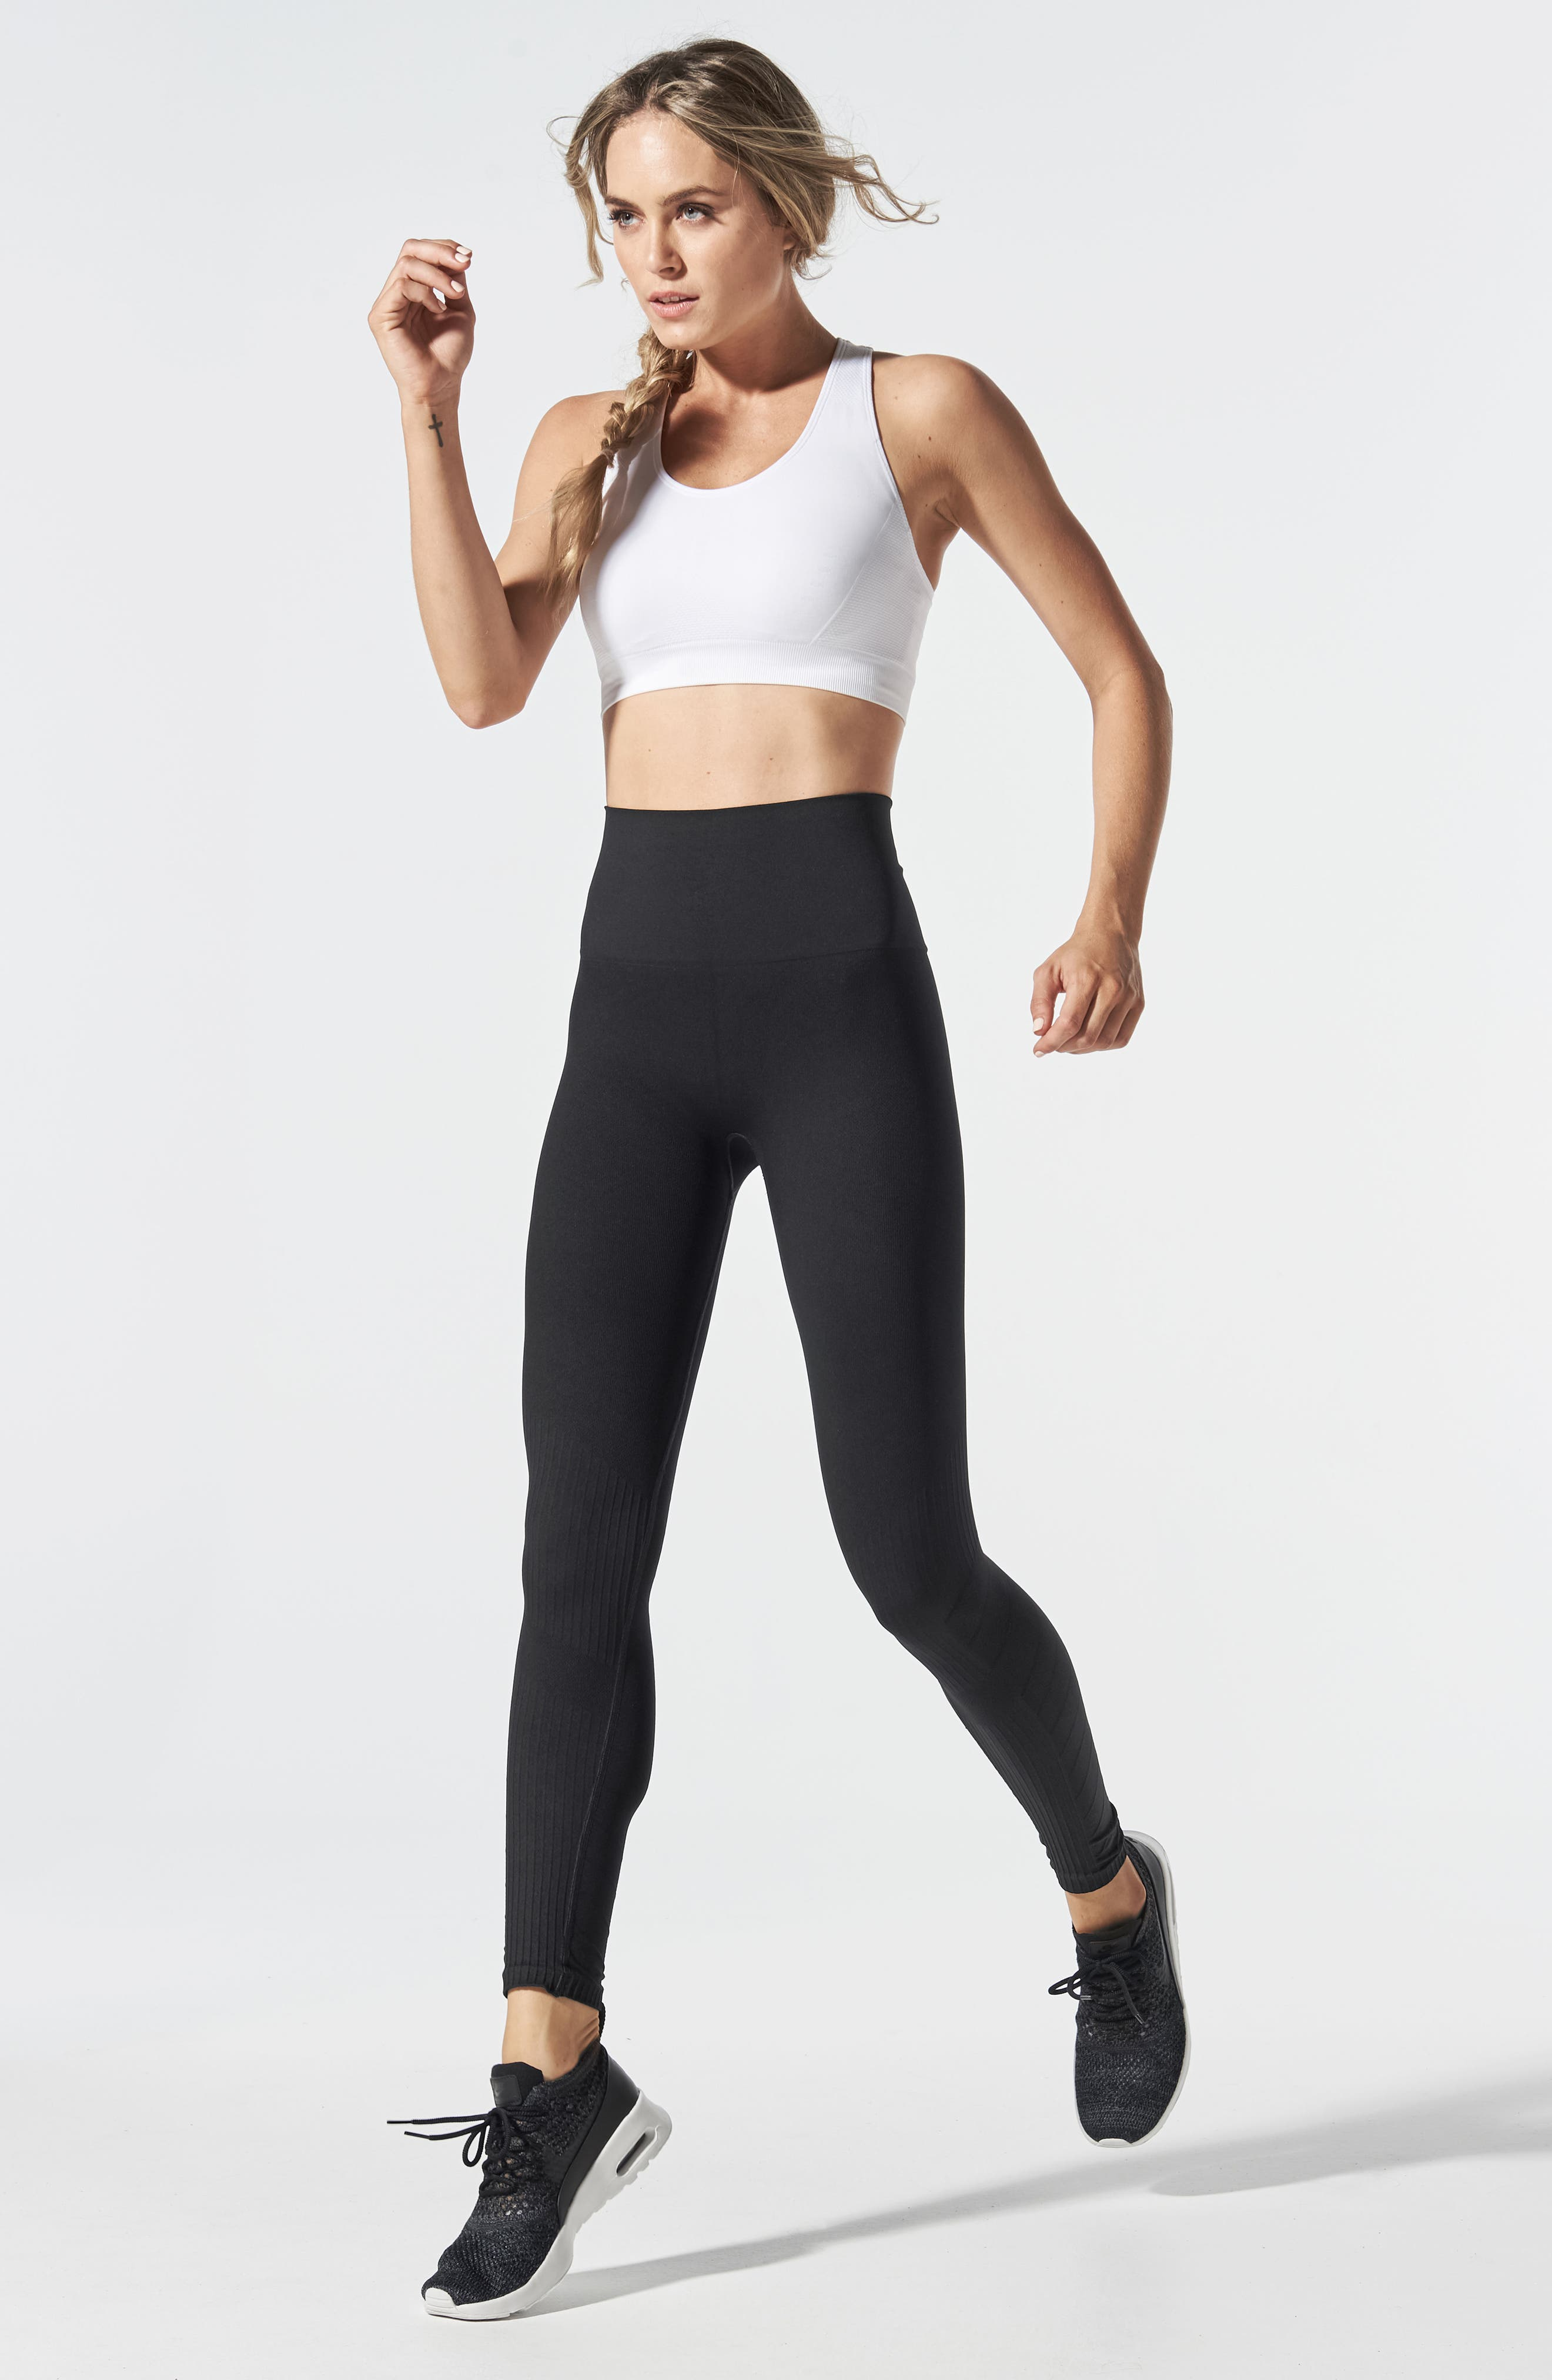 SportSupport<sup>®</sup> Hipster Contour Support Maternity/Postpartum Leggings,                             Alternate thumbnail 6, color,                             BLACK